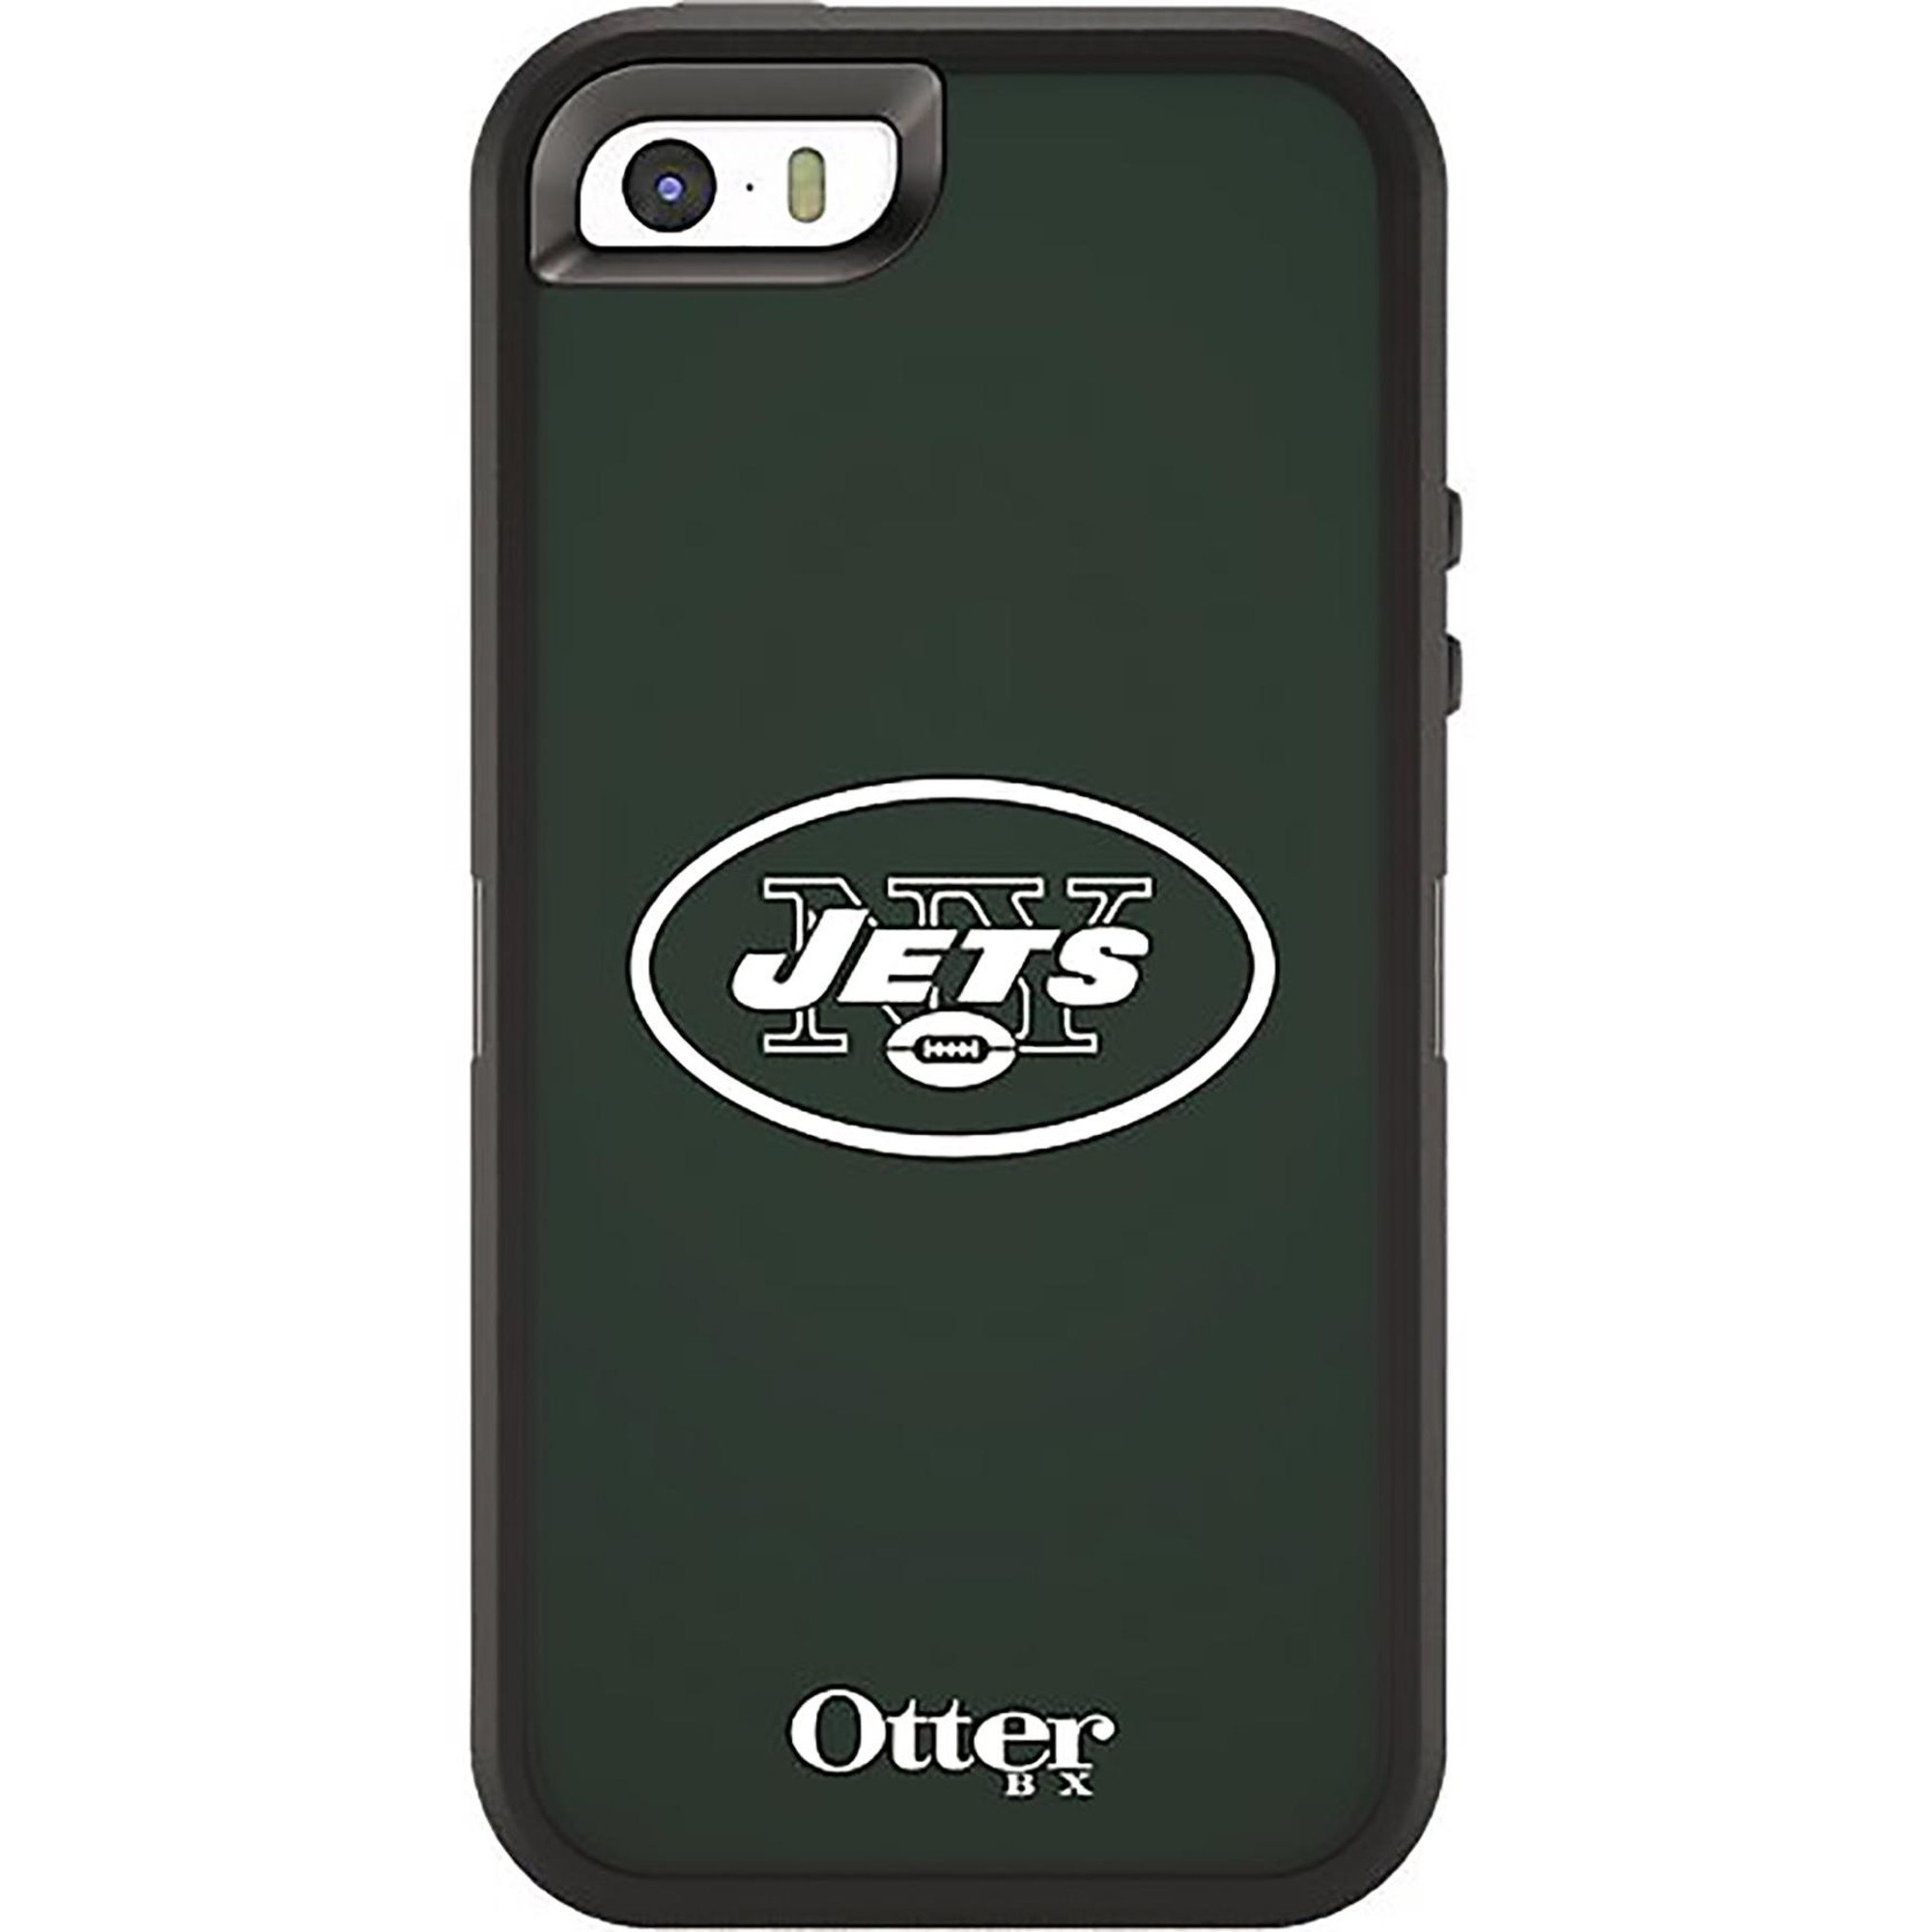 otterbox cases for iphone 5s otterbox defender series nfl for apple iphone 5 5s 4092